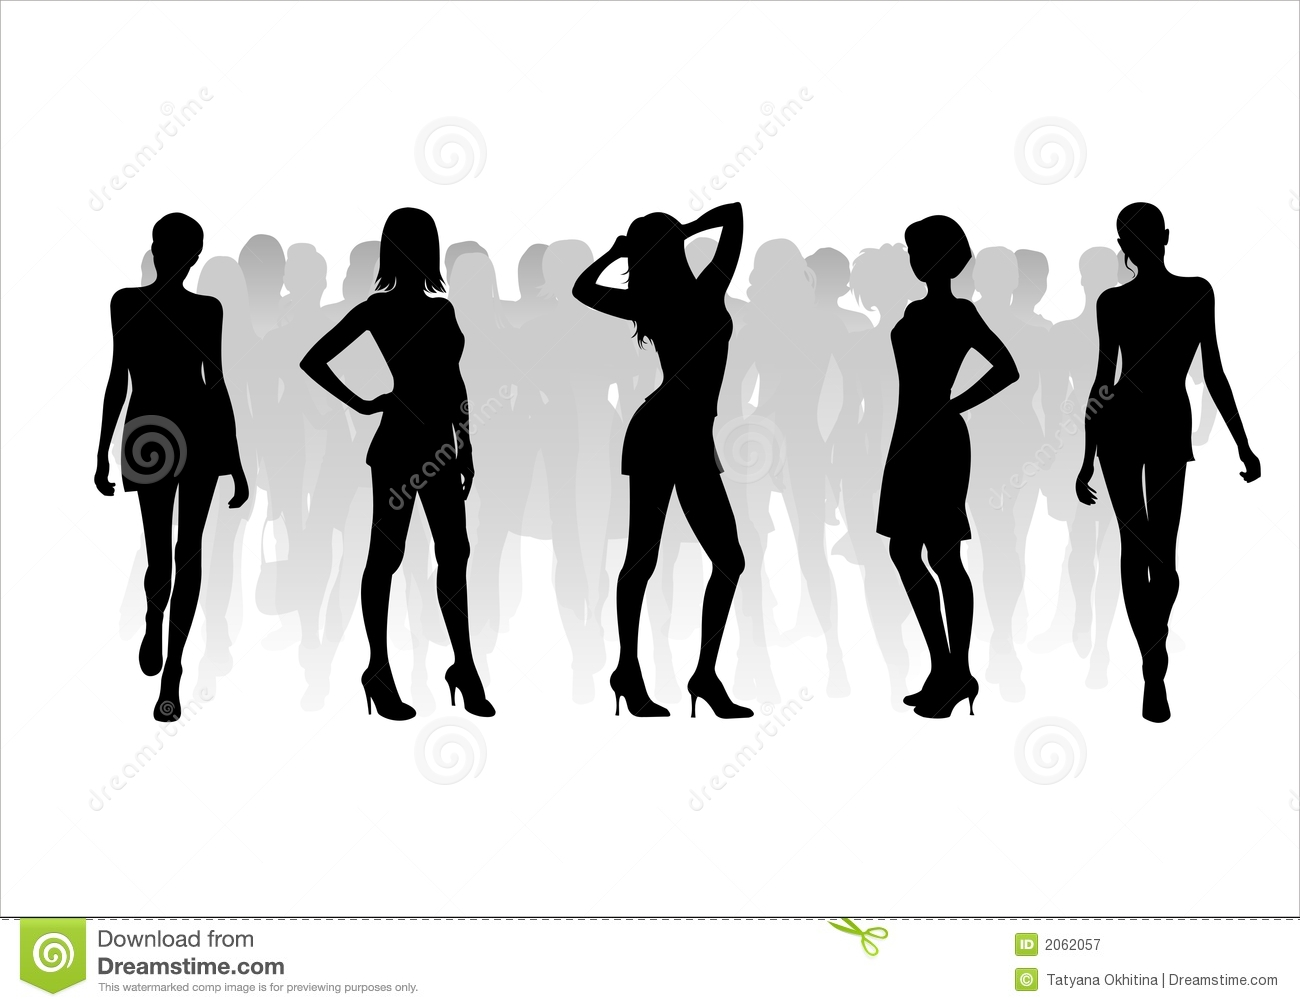 Woman Of Fashion Silhouettes - 11 Royalty Free Stock ...